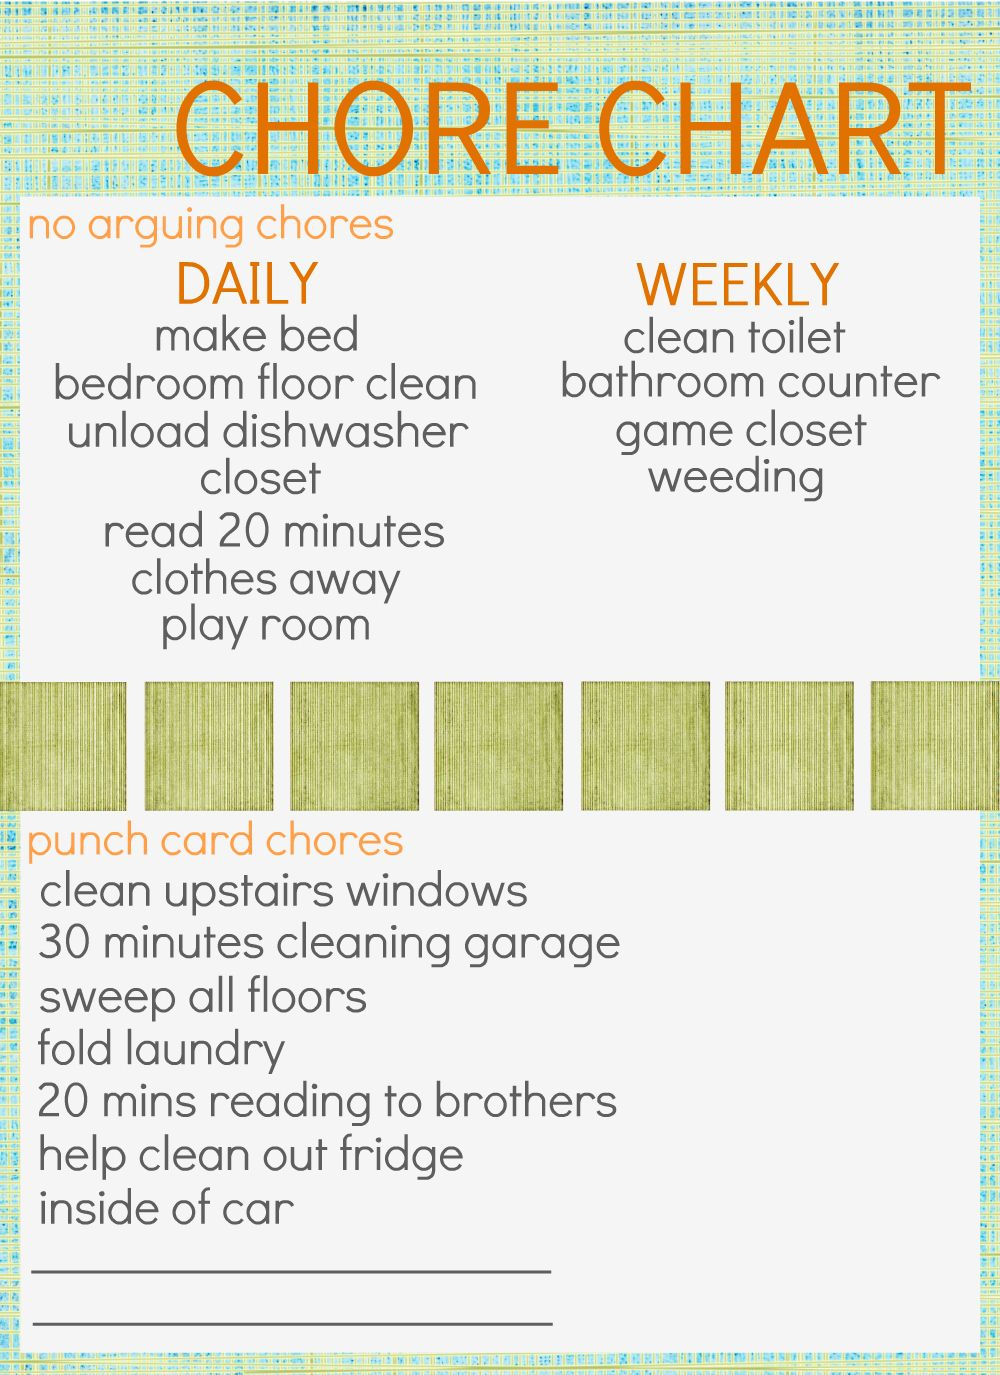 how to make a chore chart for roommates